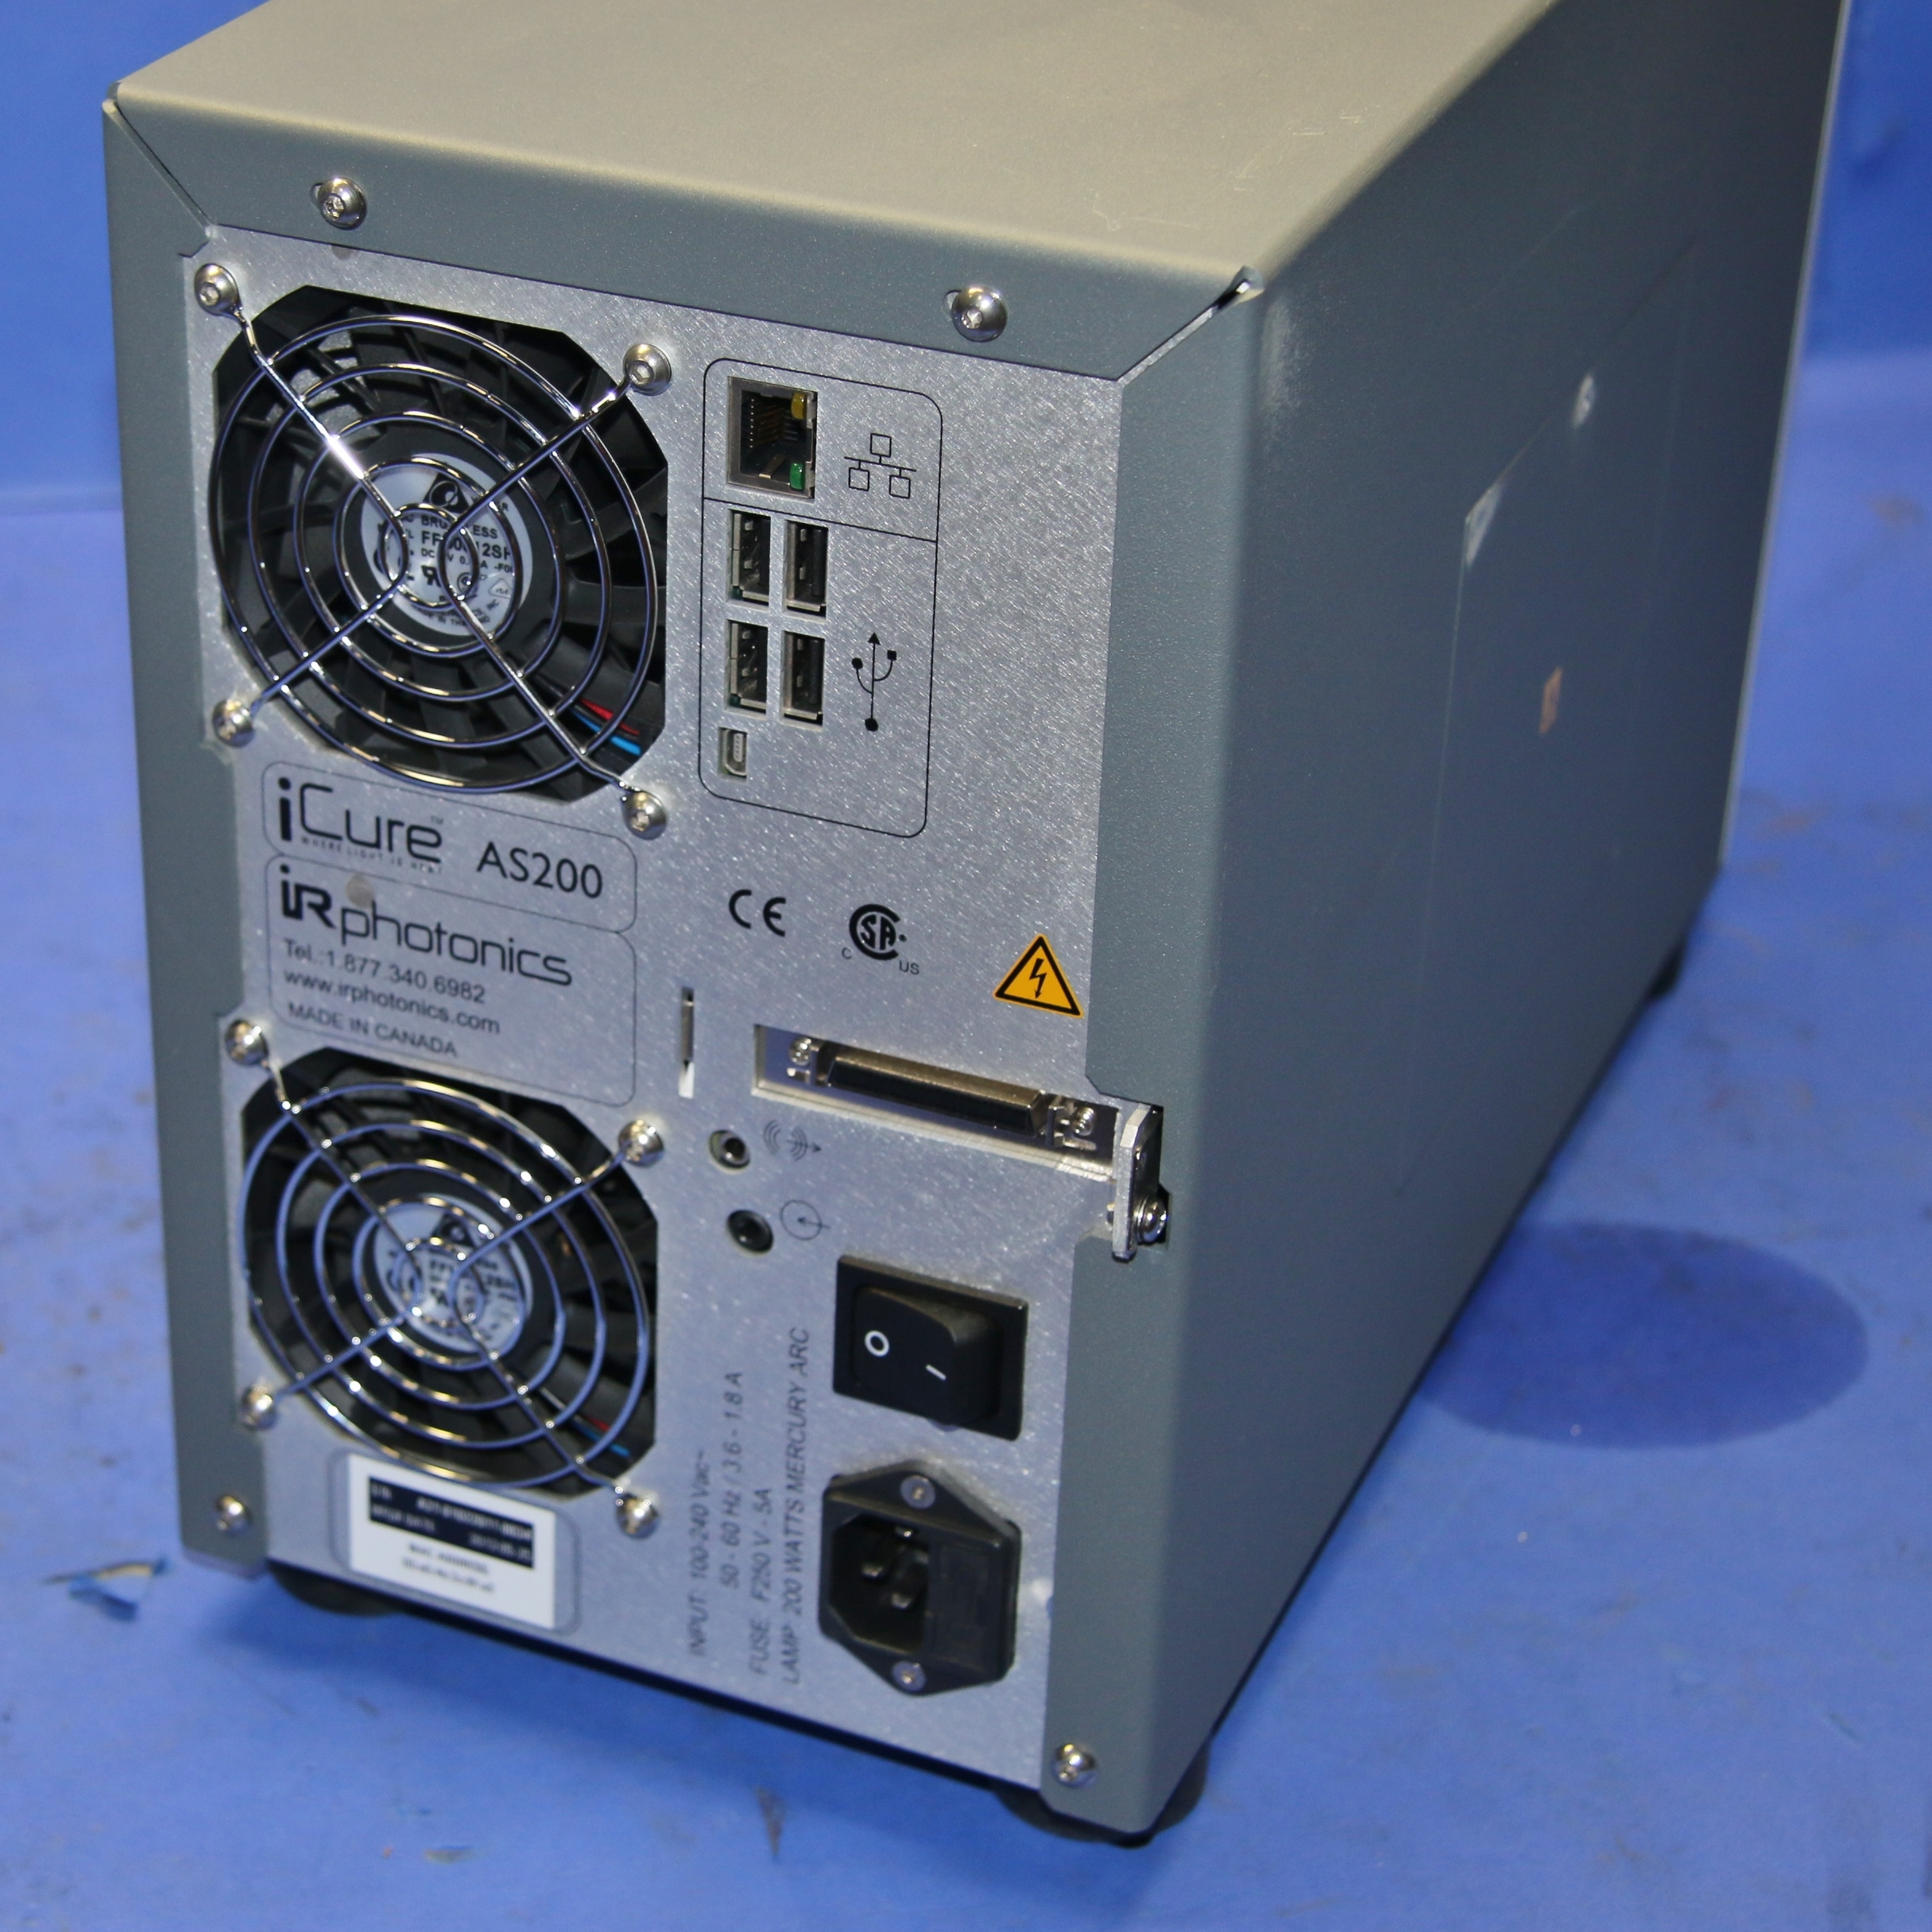 (1) UsedI R Photonics  iCure AS200 Infrared Thermal Spot Curing System